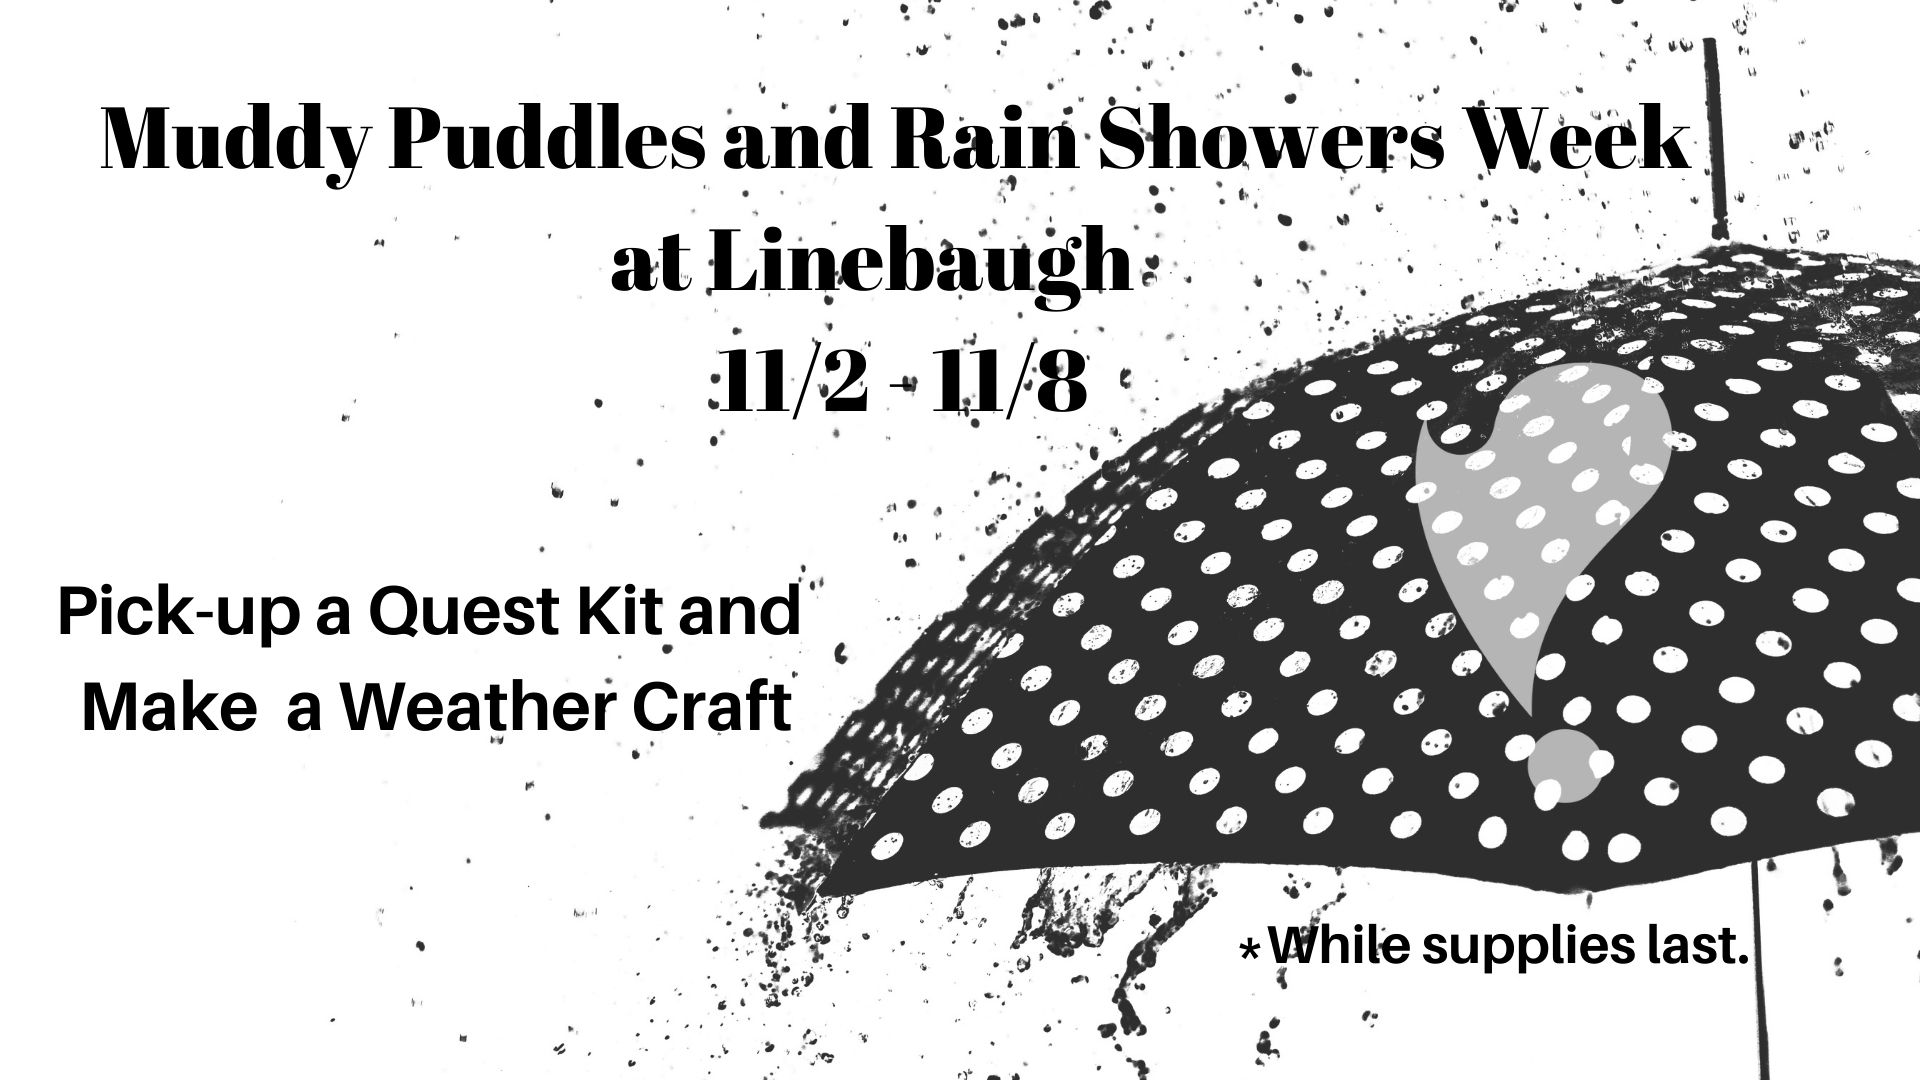 Muddy Puddles and Rain Showers Quest Kits at Linebaugh